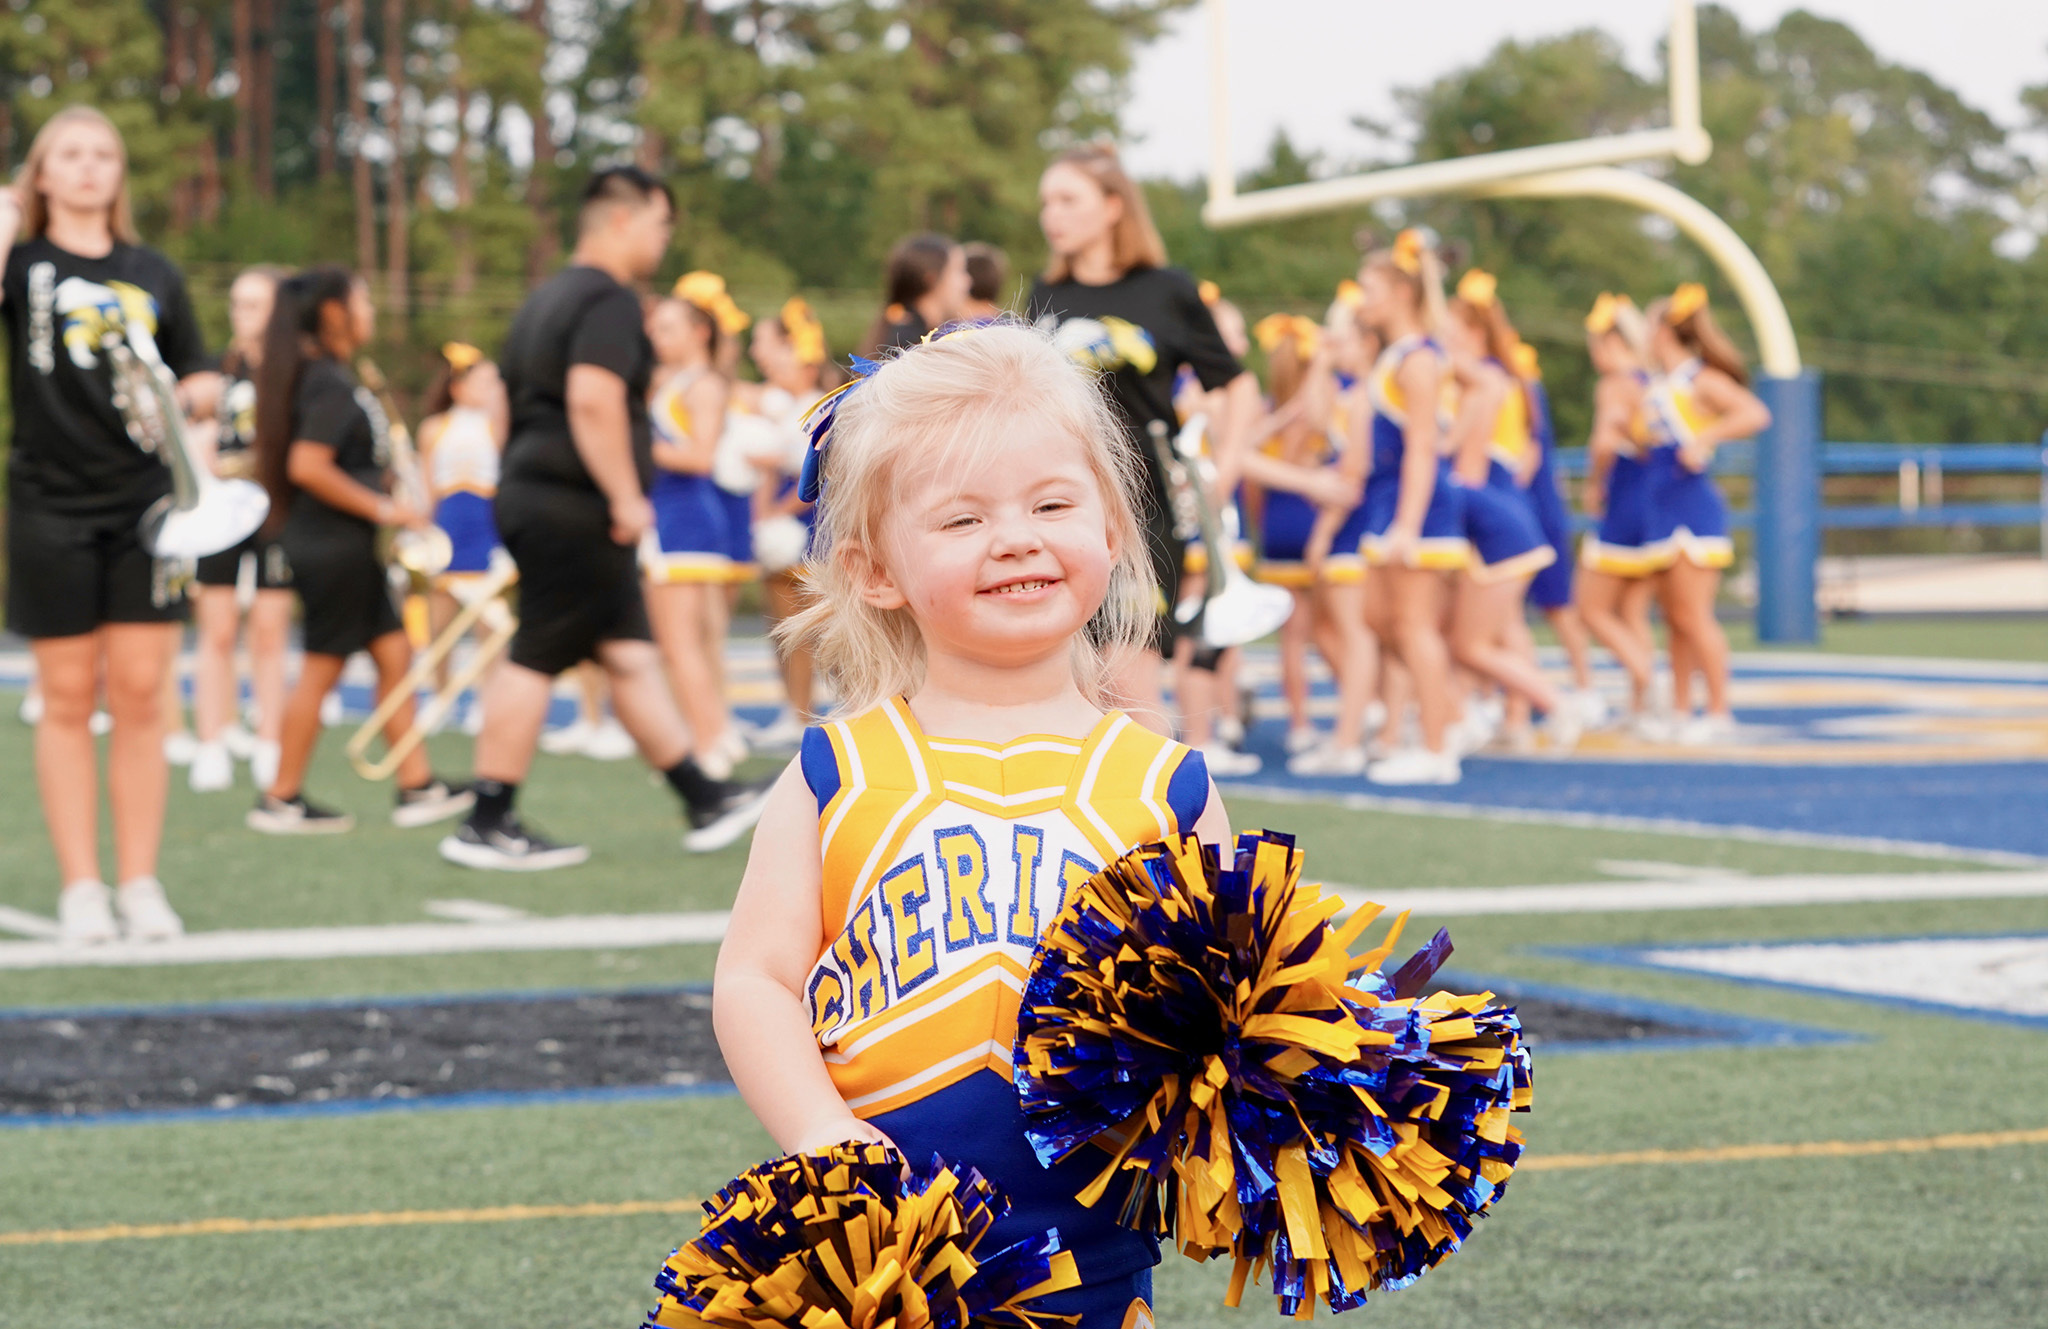 A little girl dressed in cheer uniform